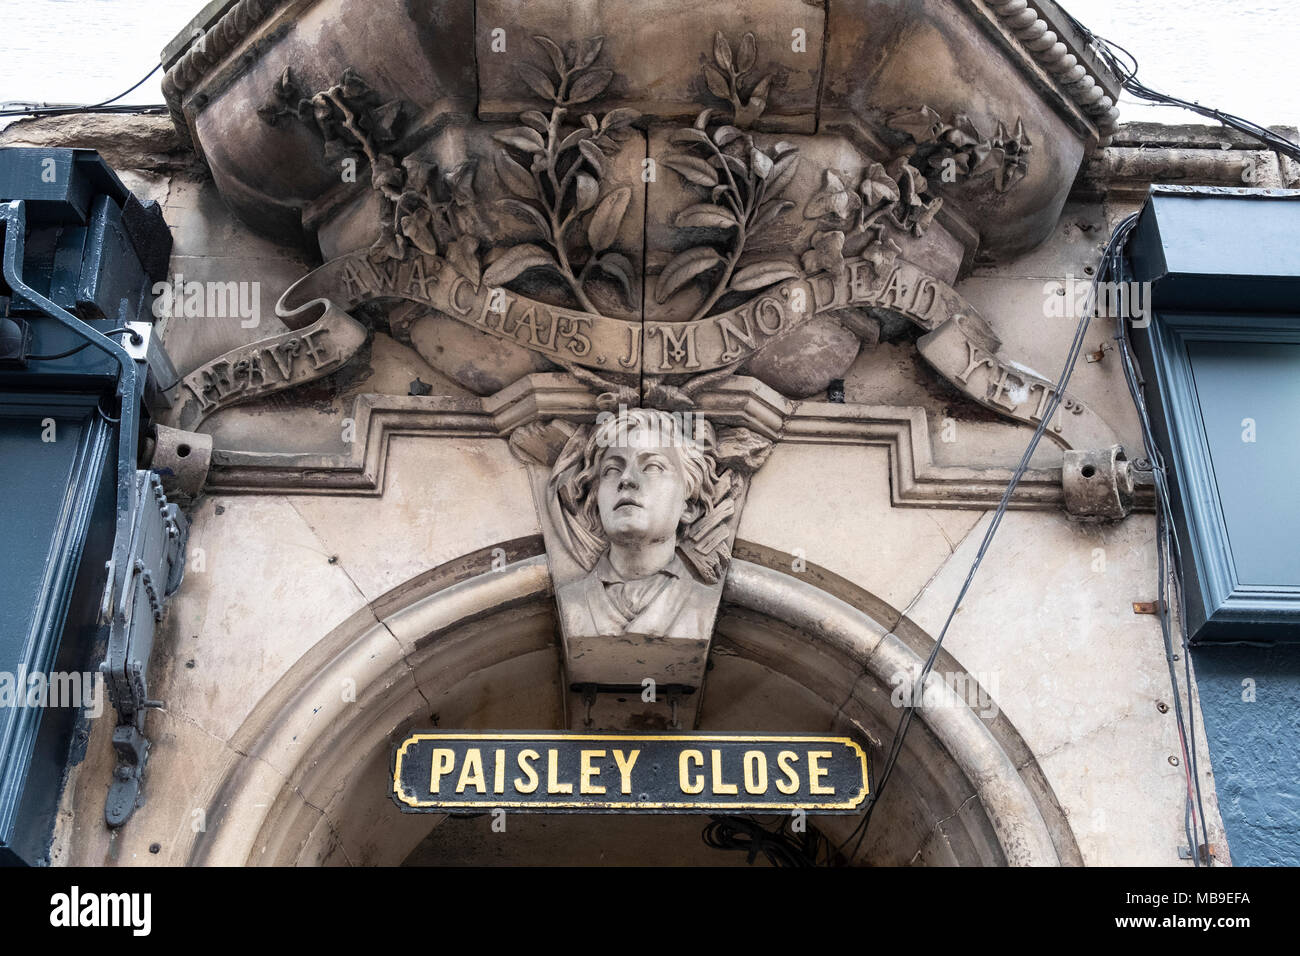 Detail of Paisley Close decoration on Royal Mile in Edinburgh Old Town, Scotland, United Kingdom - Stock Image